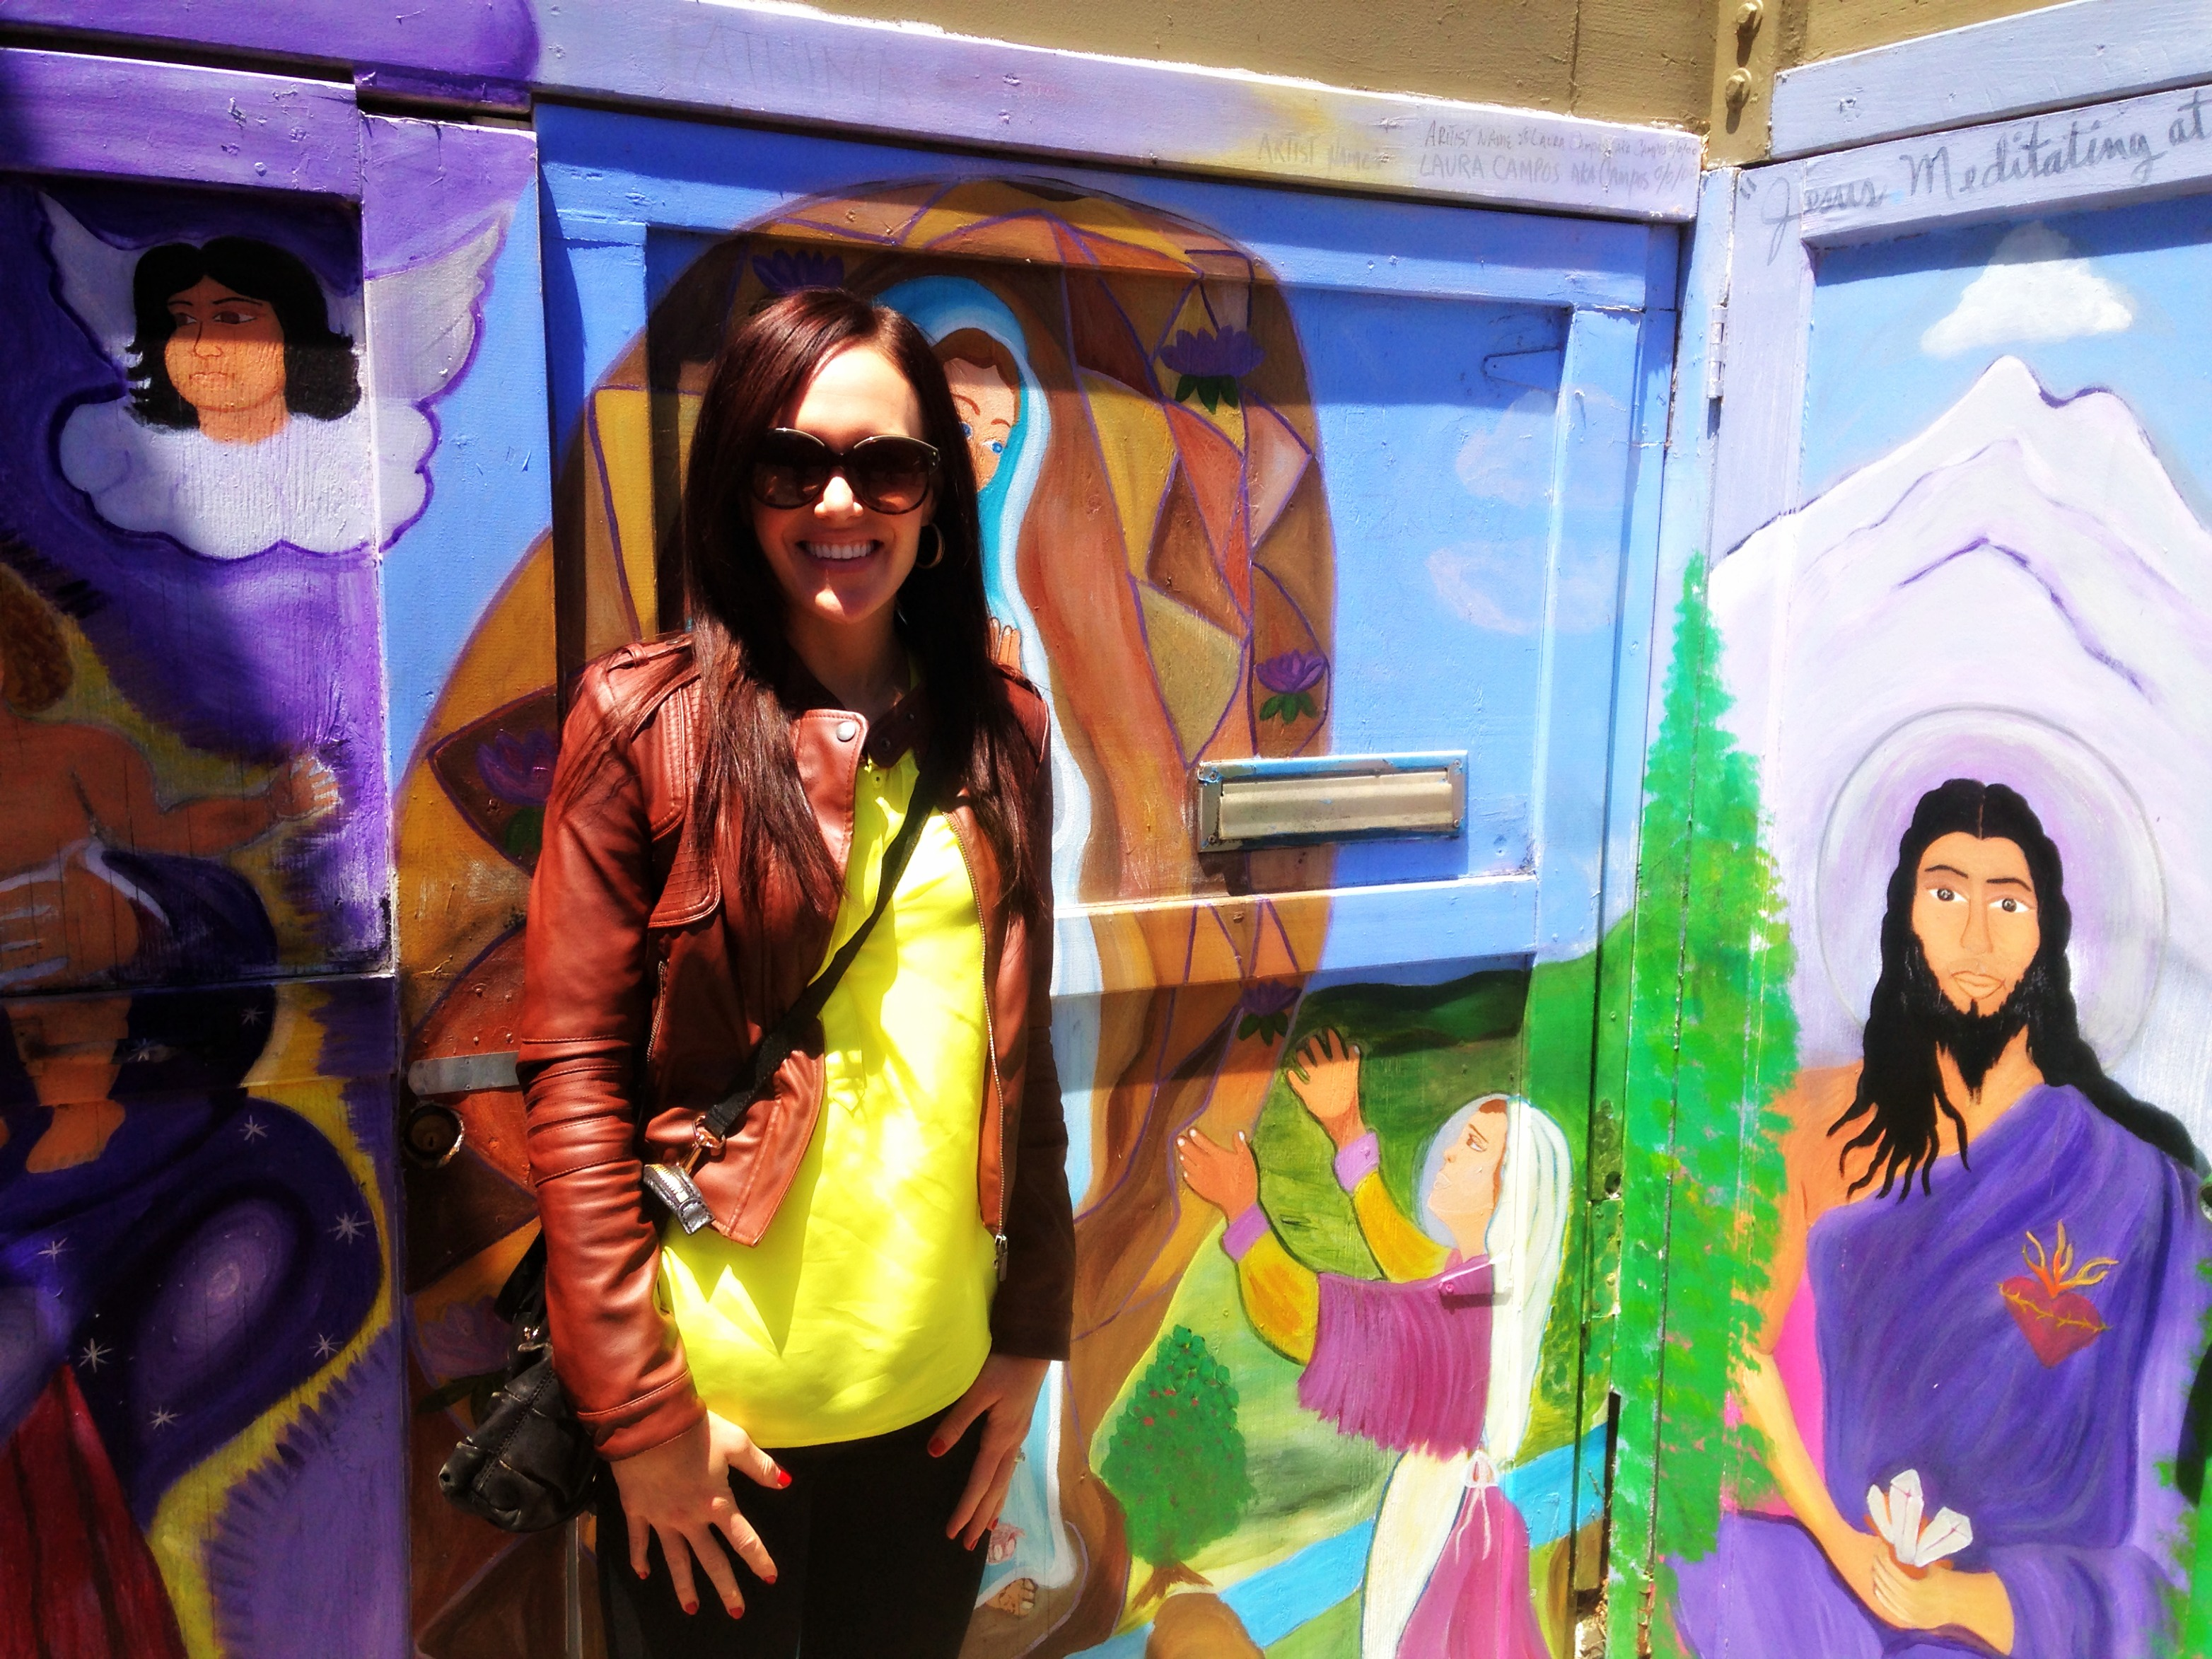 Ashley in front of murals